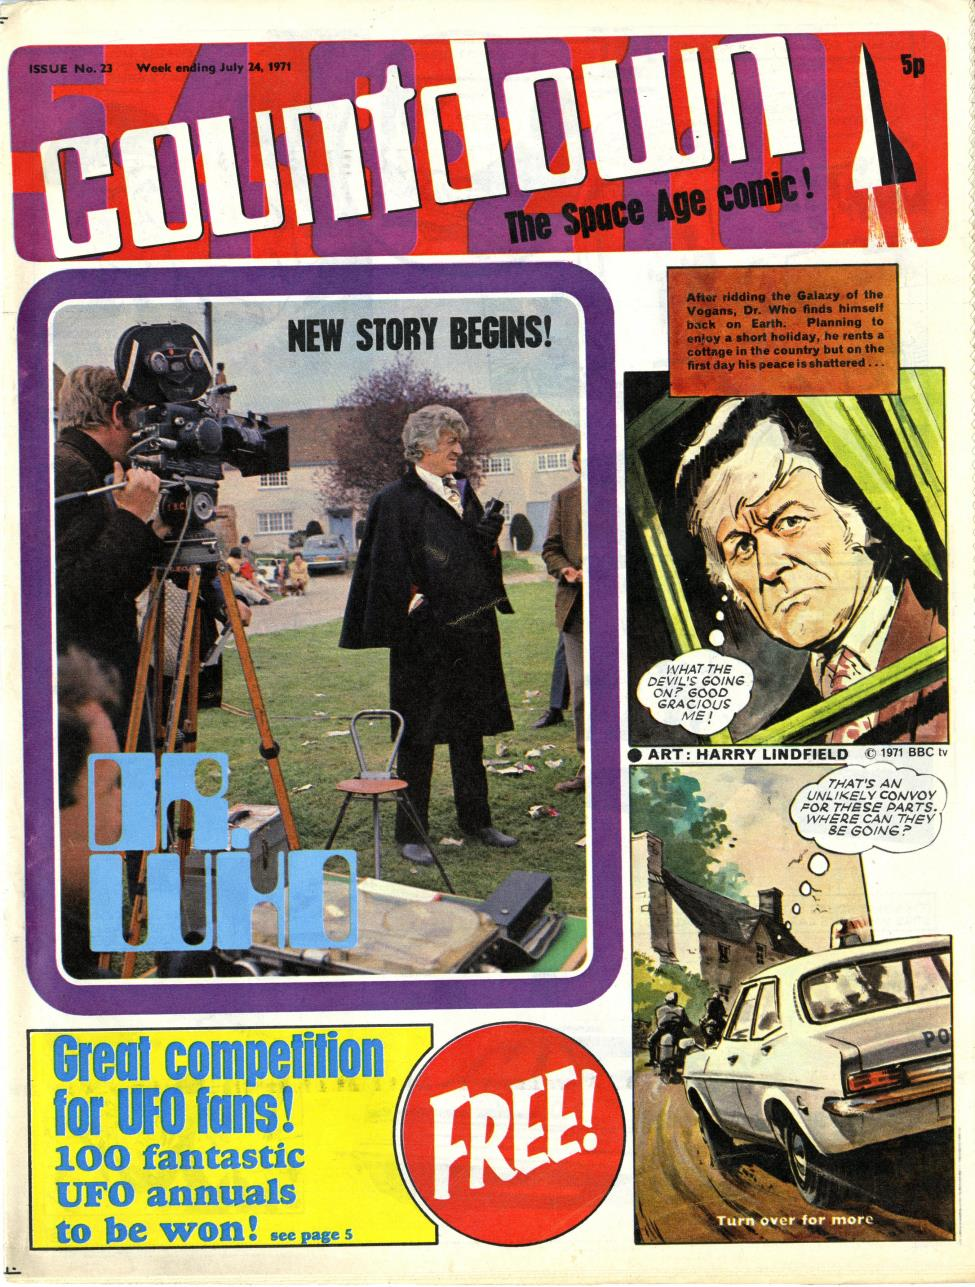 Polystyle Publications, Countdown issue 23, 24 July 1971